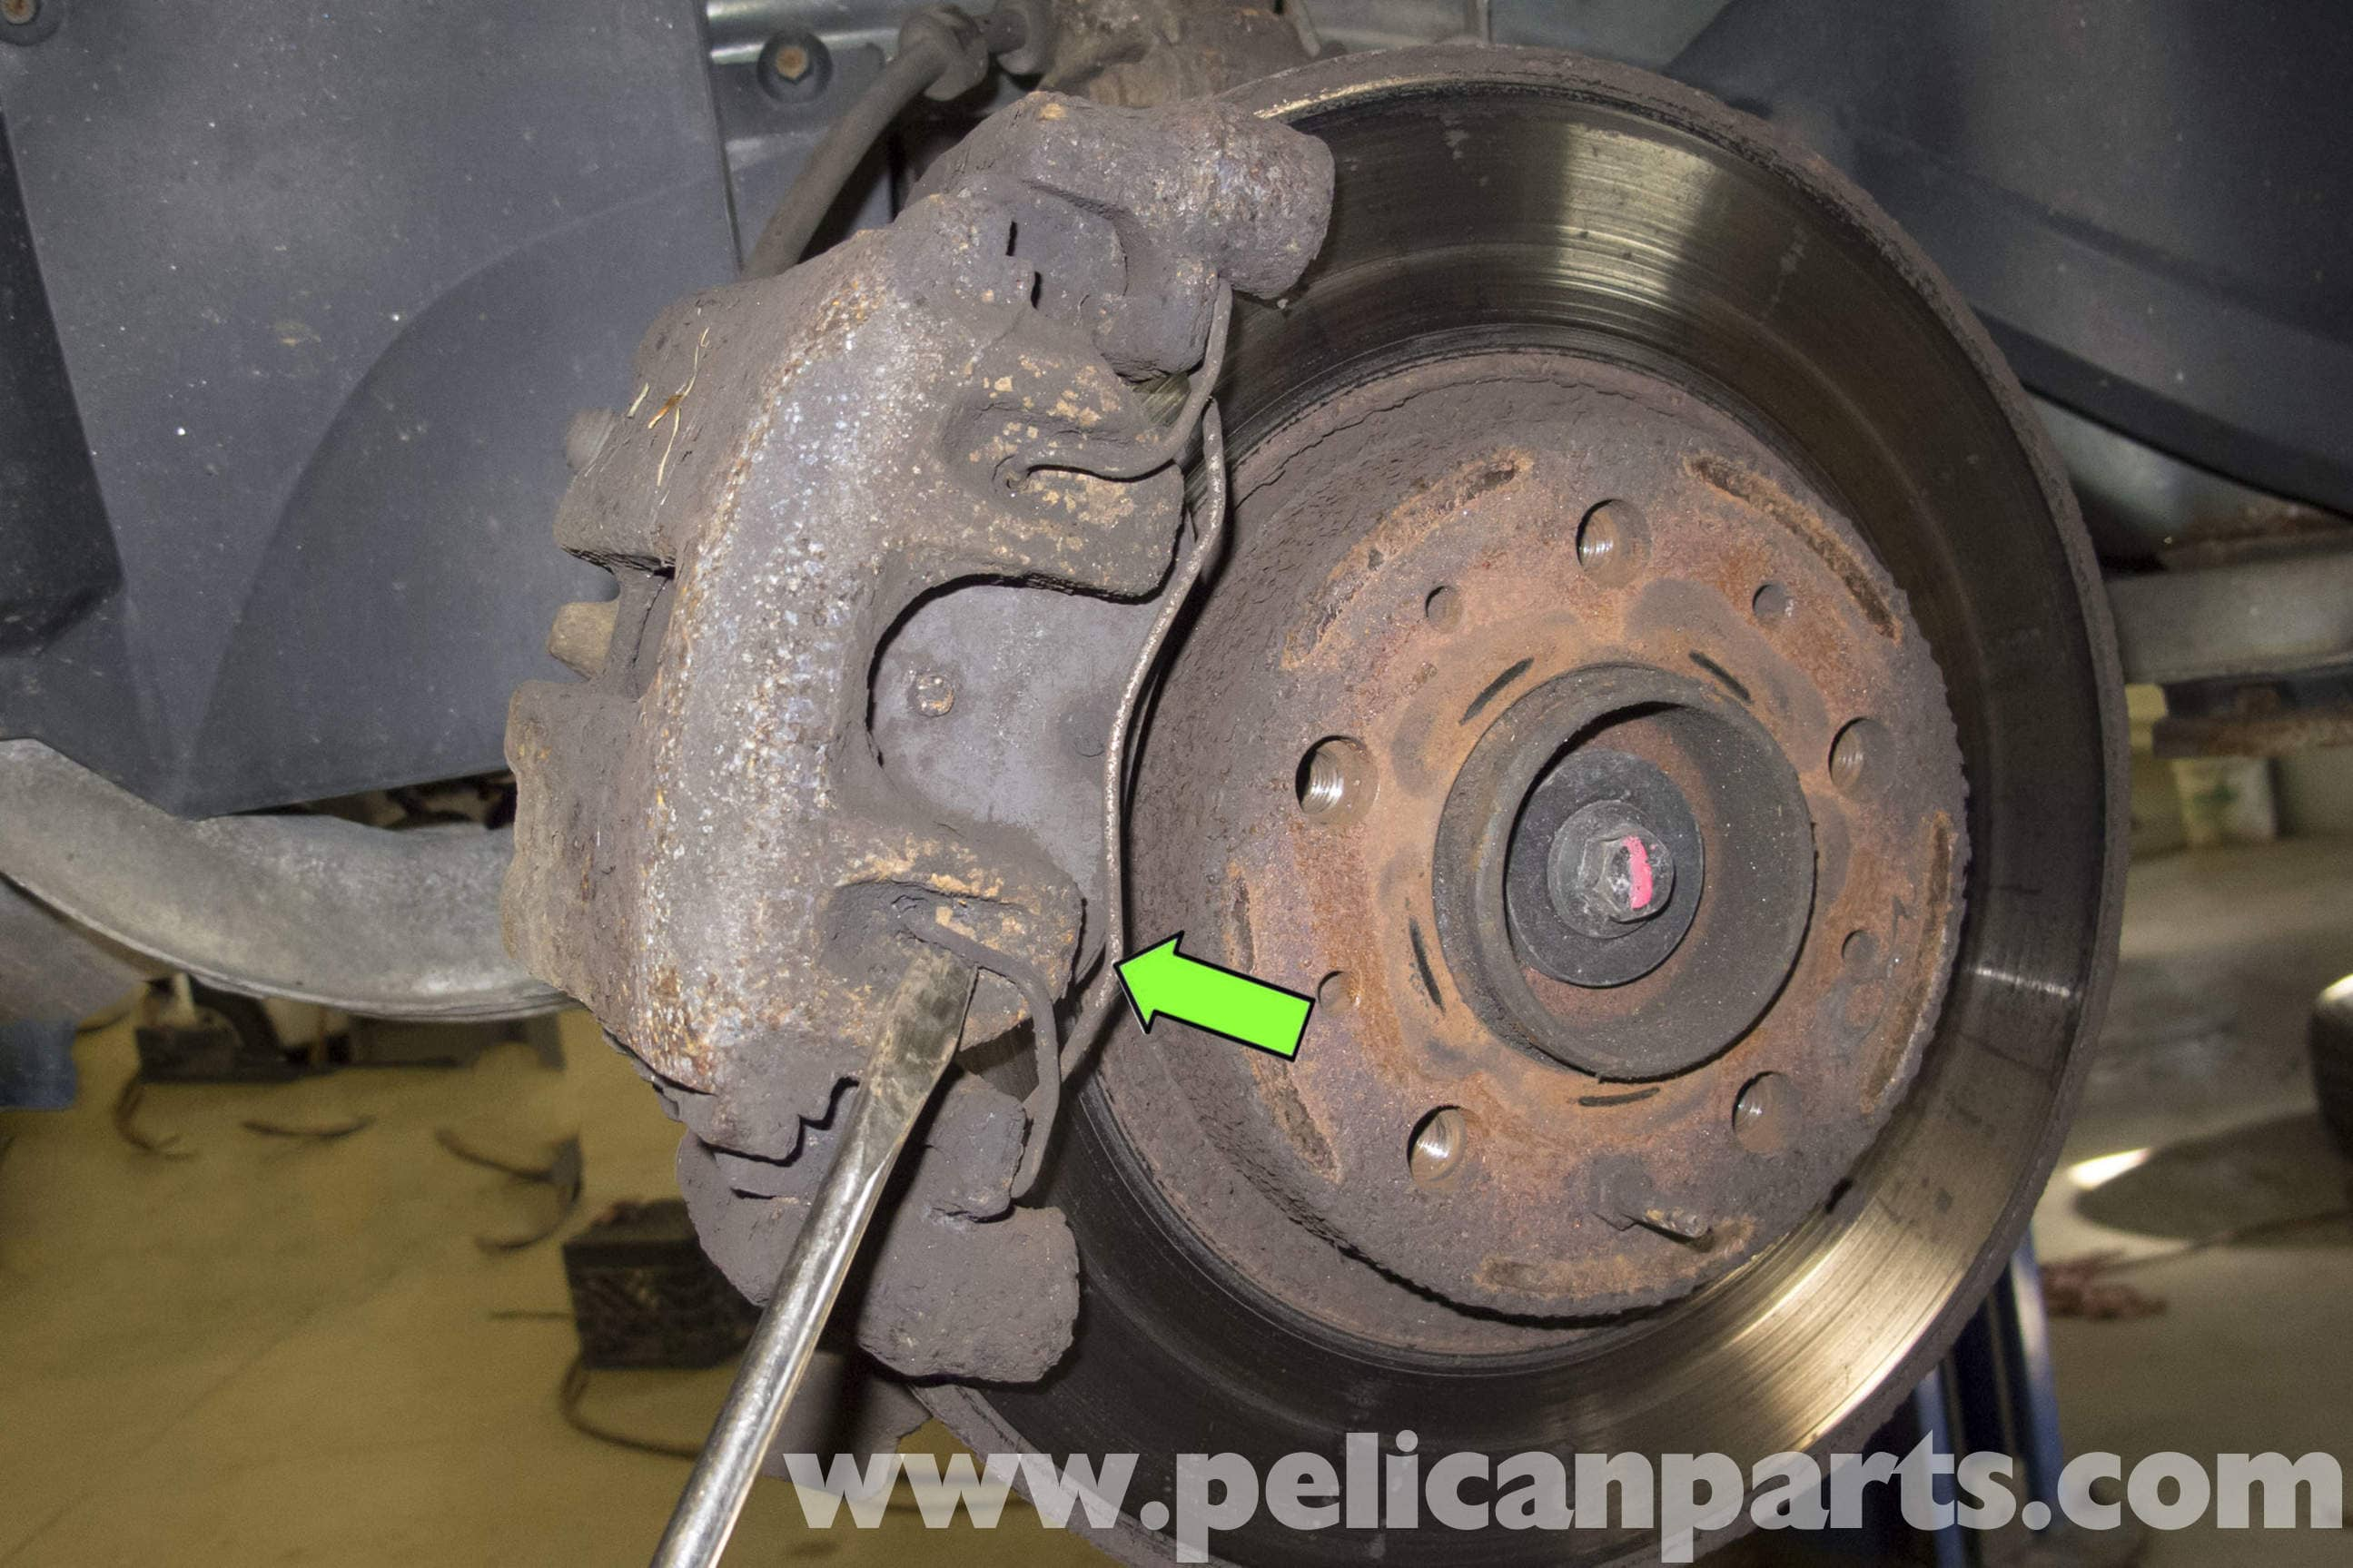 Volvo V70 Front Brake Caliper And Hose Replacement 1998